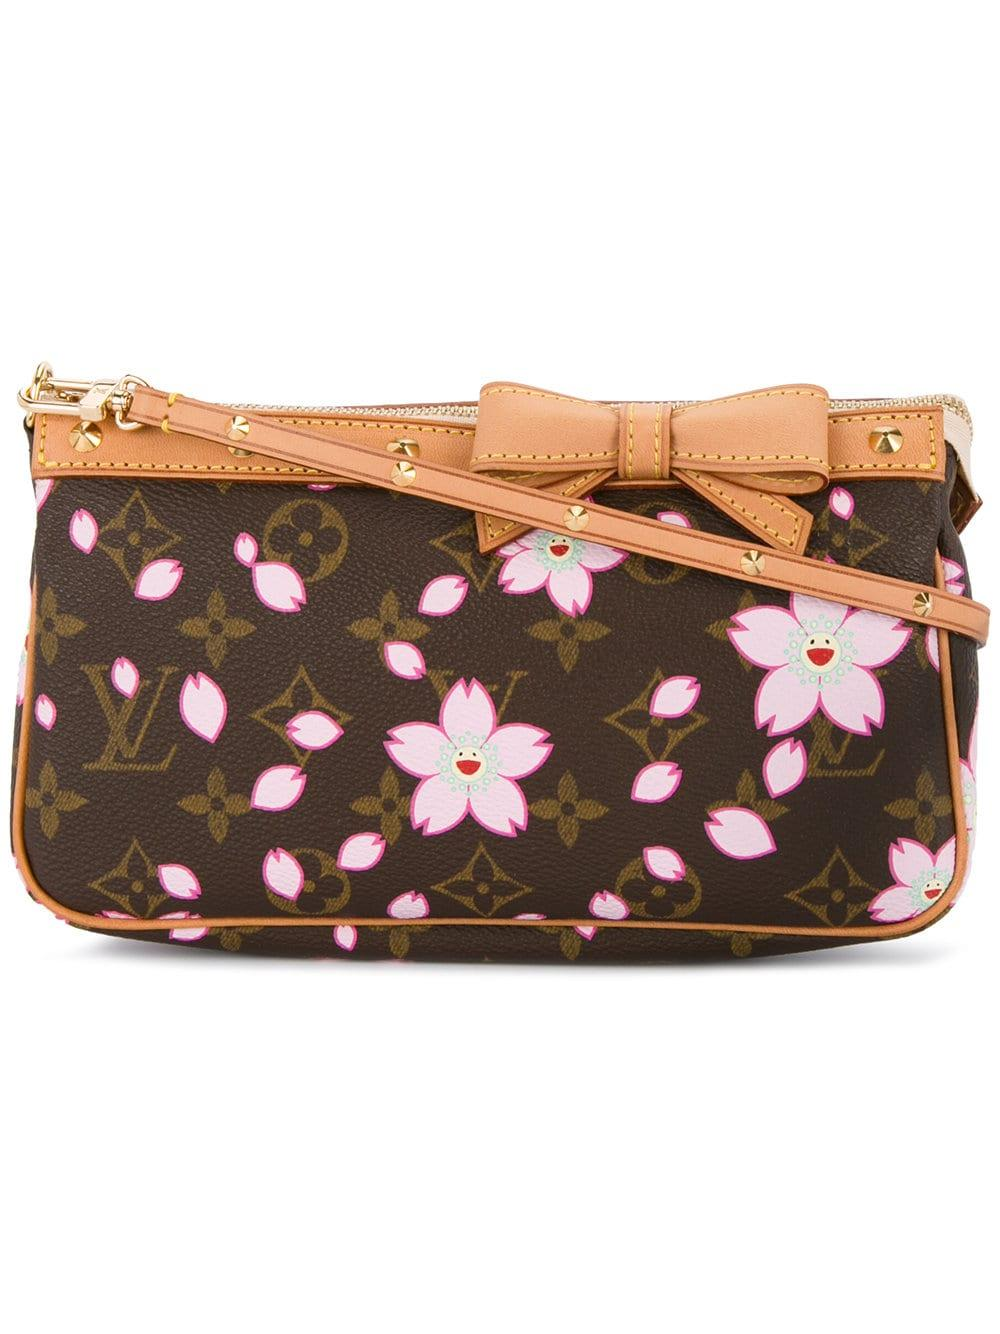 dbc80cd055 Louis Vuitton Pre-Owned Cherry Blossom Mini Bag - Brown | ModeSens